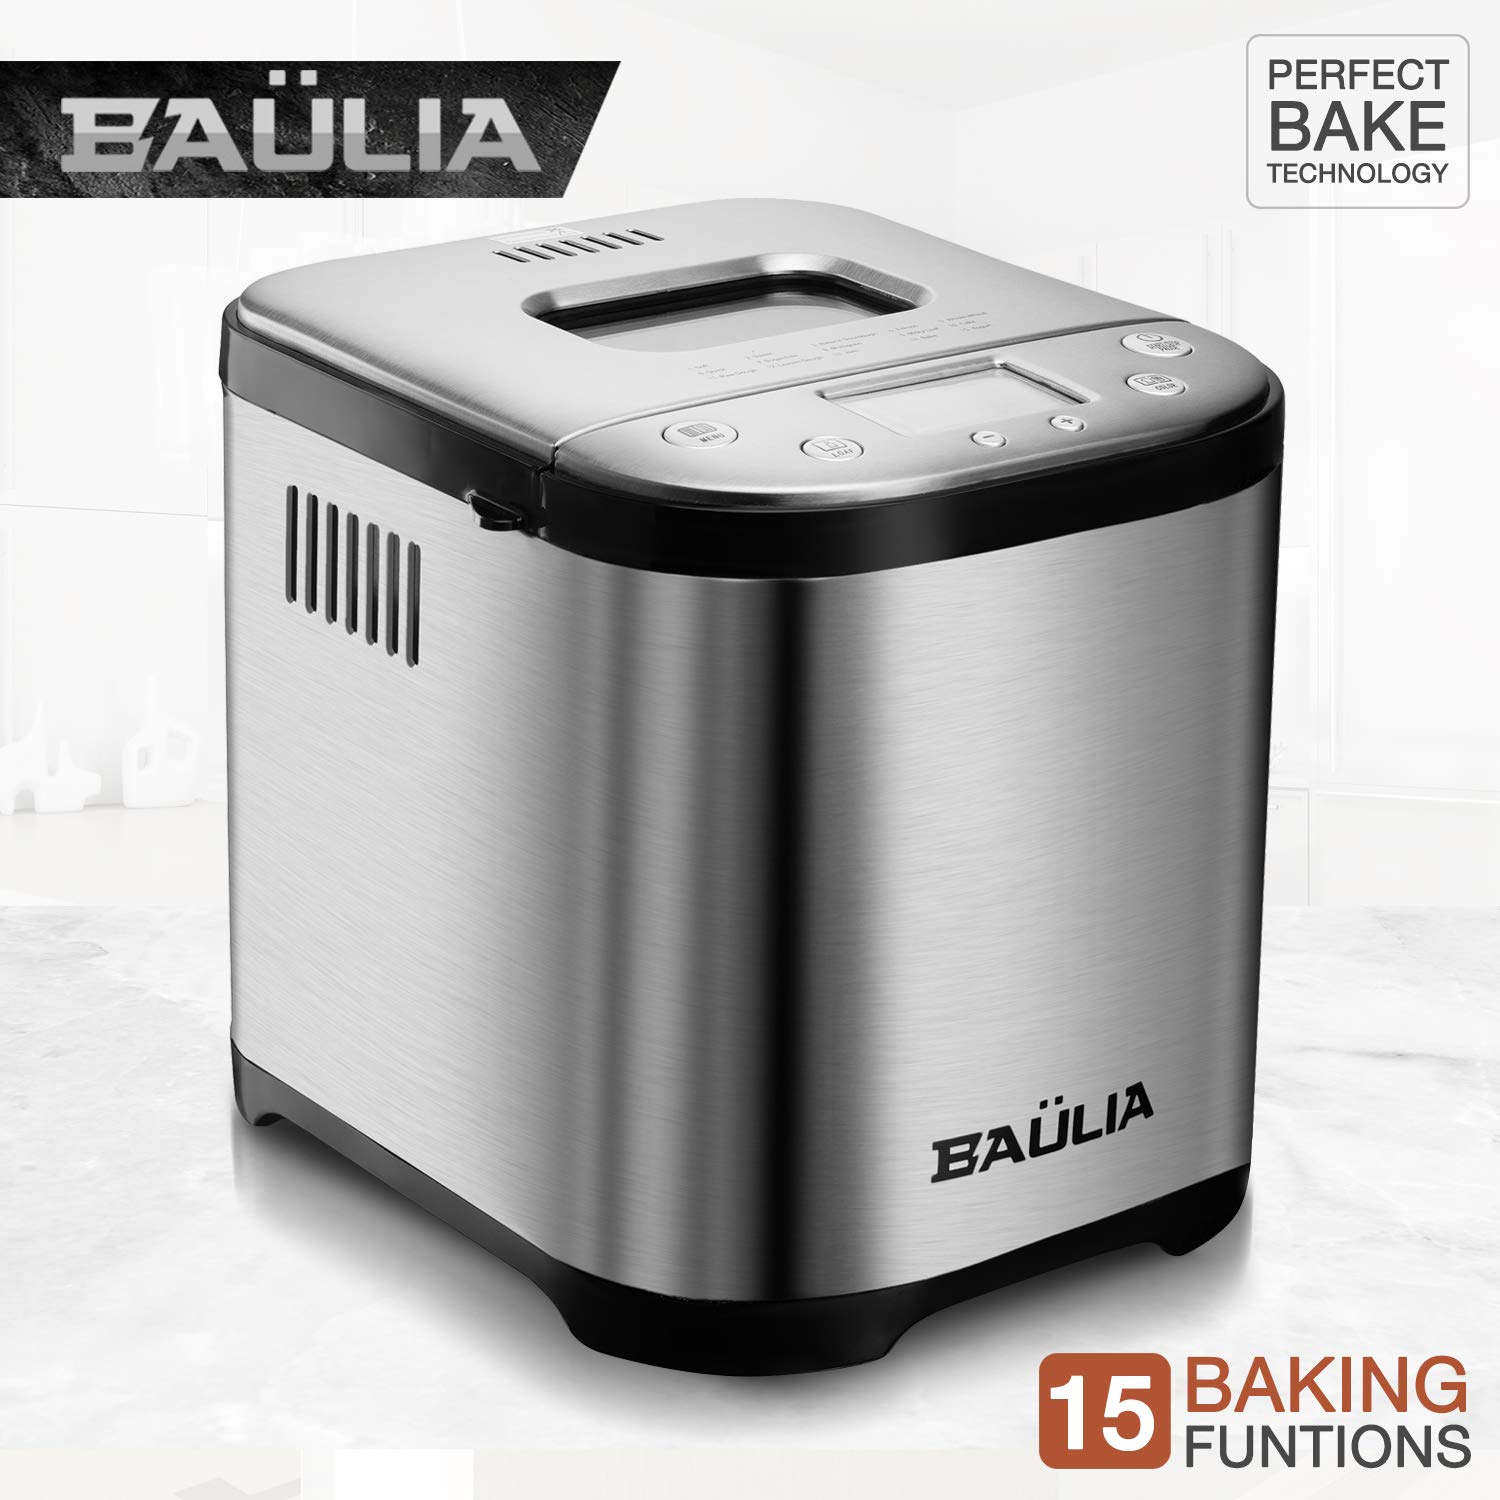 Baulia BM822 Automatic Bread Maker Machine, Gluten/Sugar-Free Functions 15 Programmable Bread Types Settings